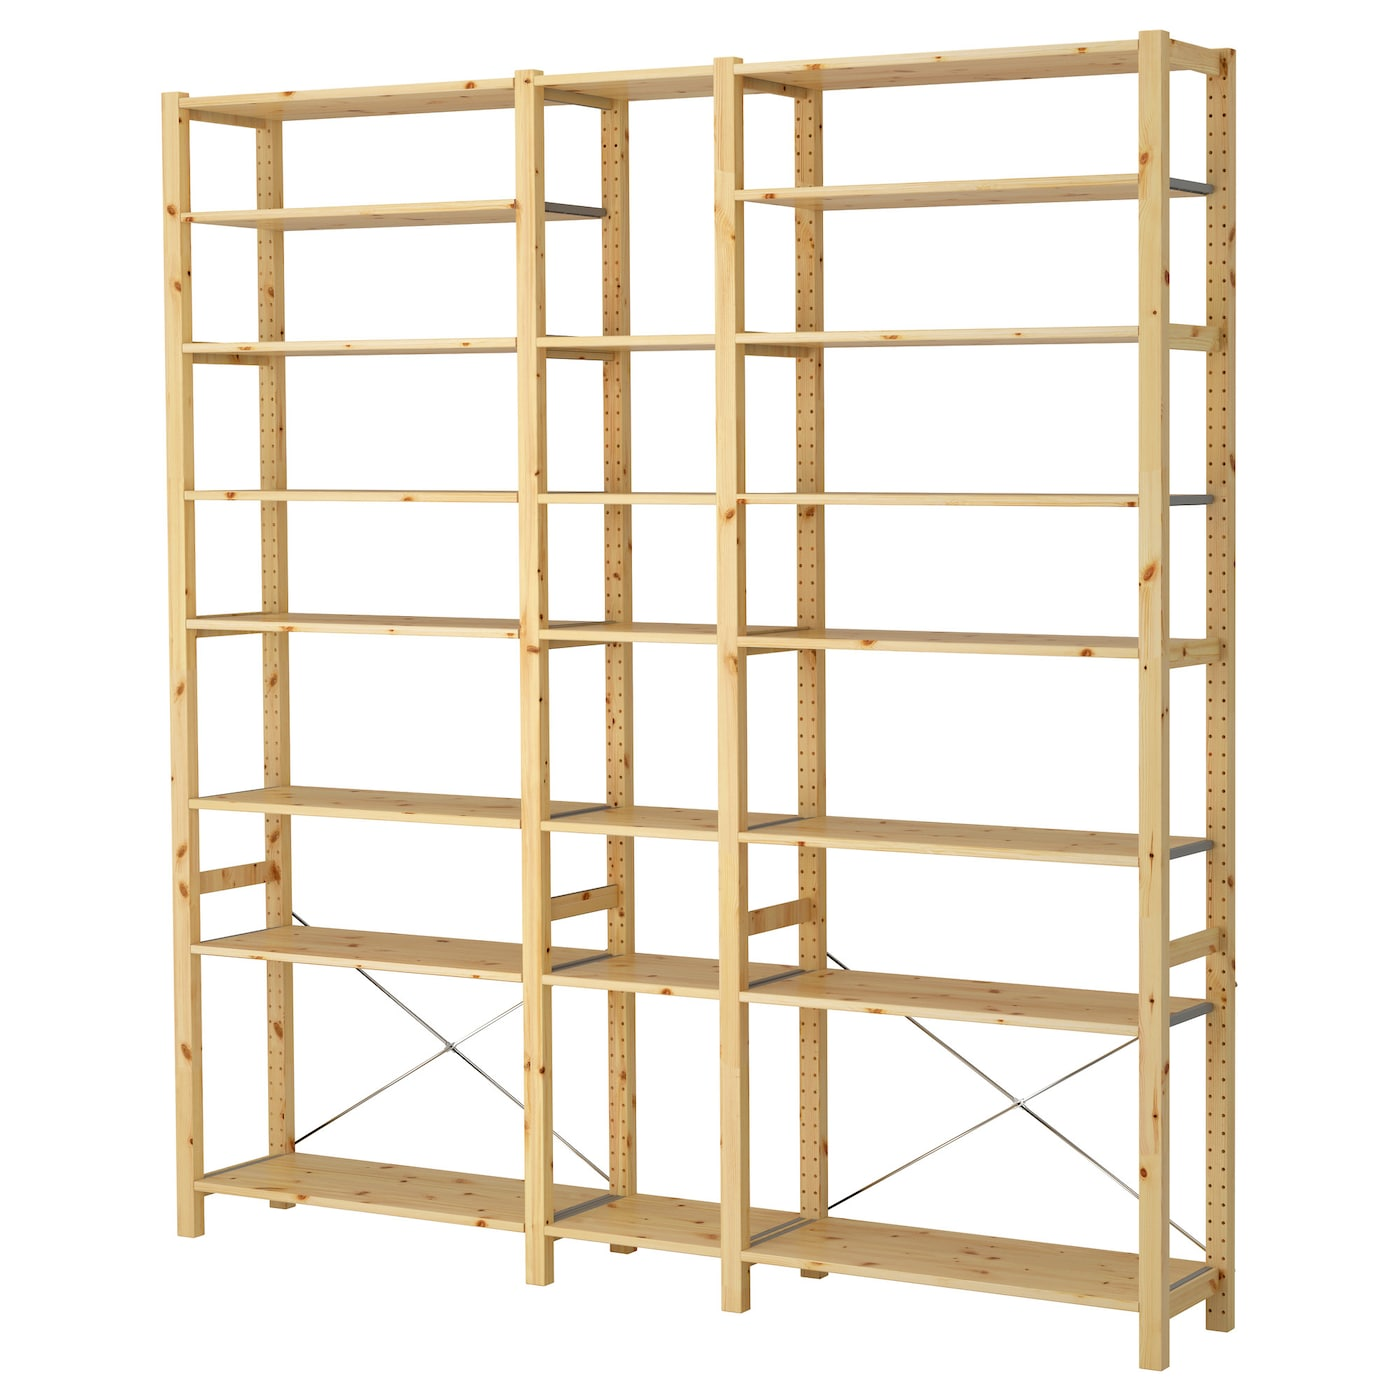 ivar 3 sections shelves pine 219 x 30 x 226 cm ikea. Black Bedroom Furniture Sets. Home Design Ideas